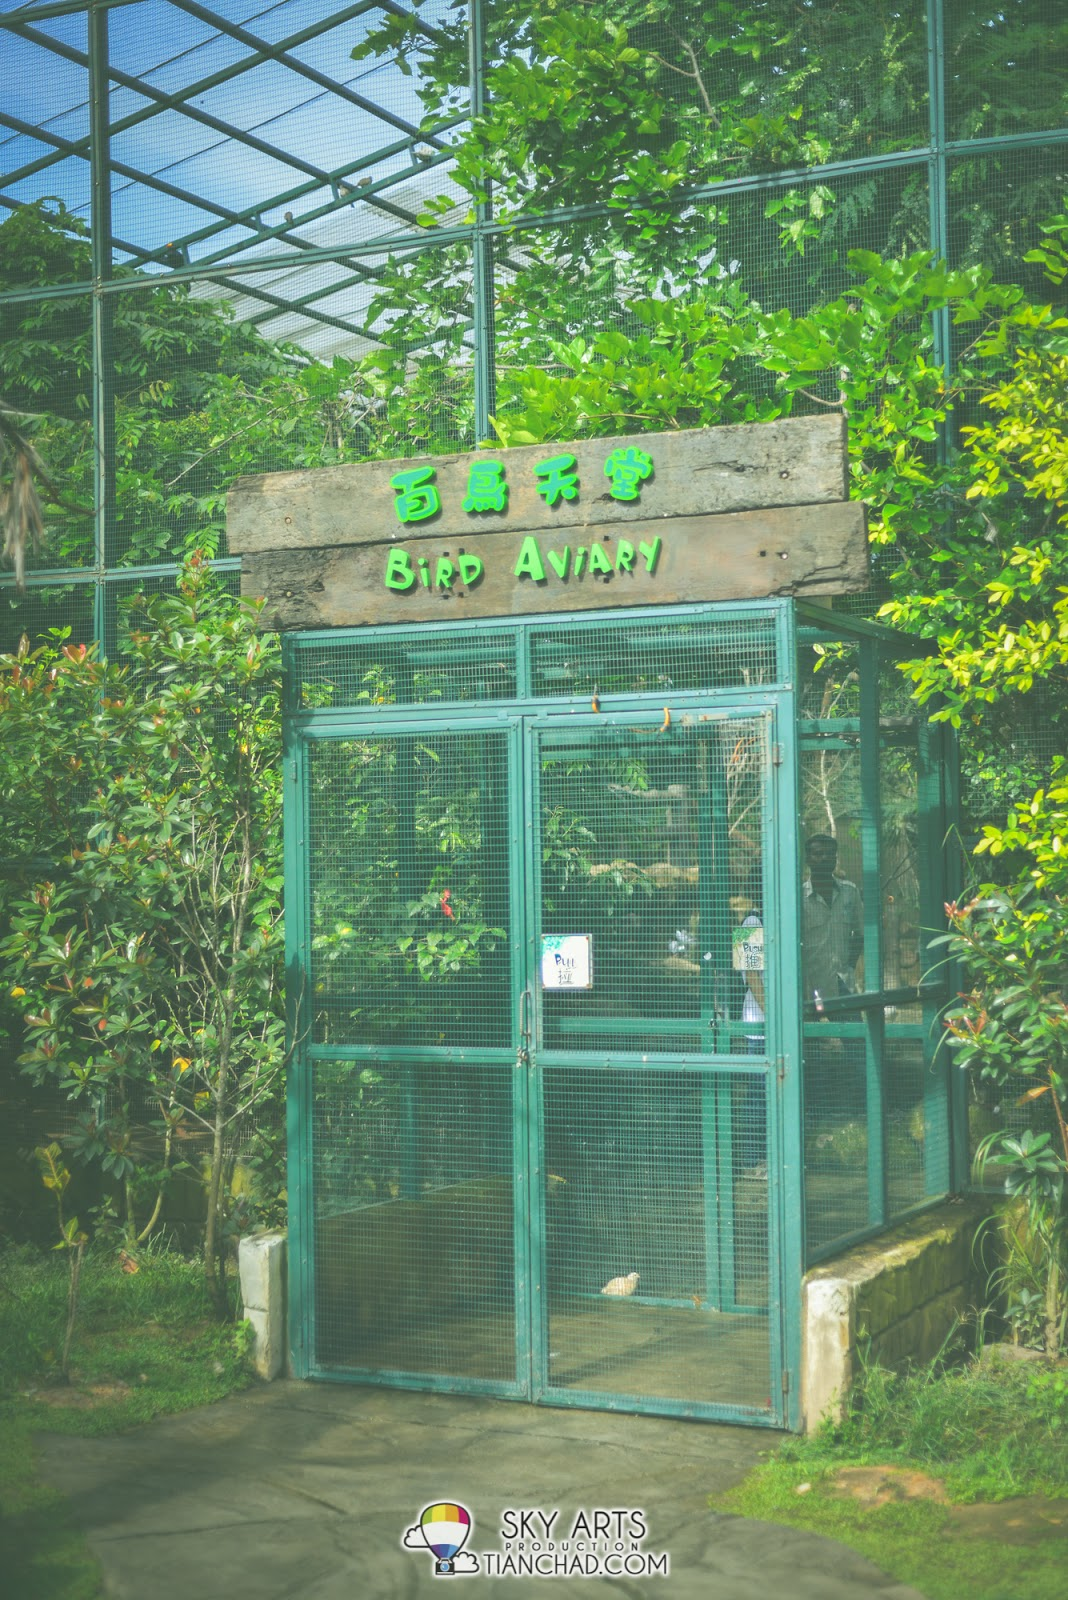 Bird Aviary - A place that kids will enjoy feeding the bird